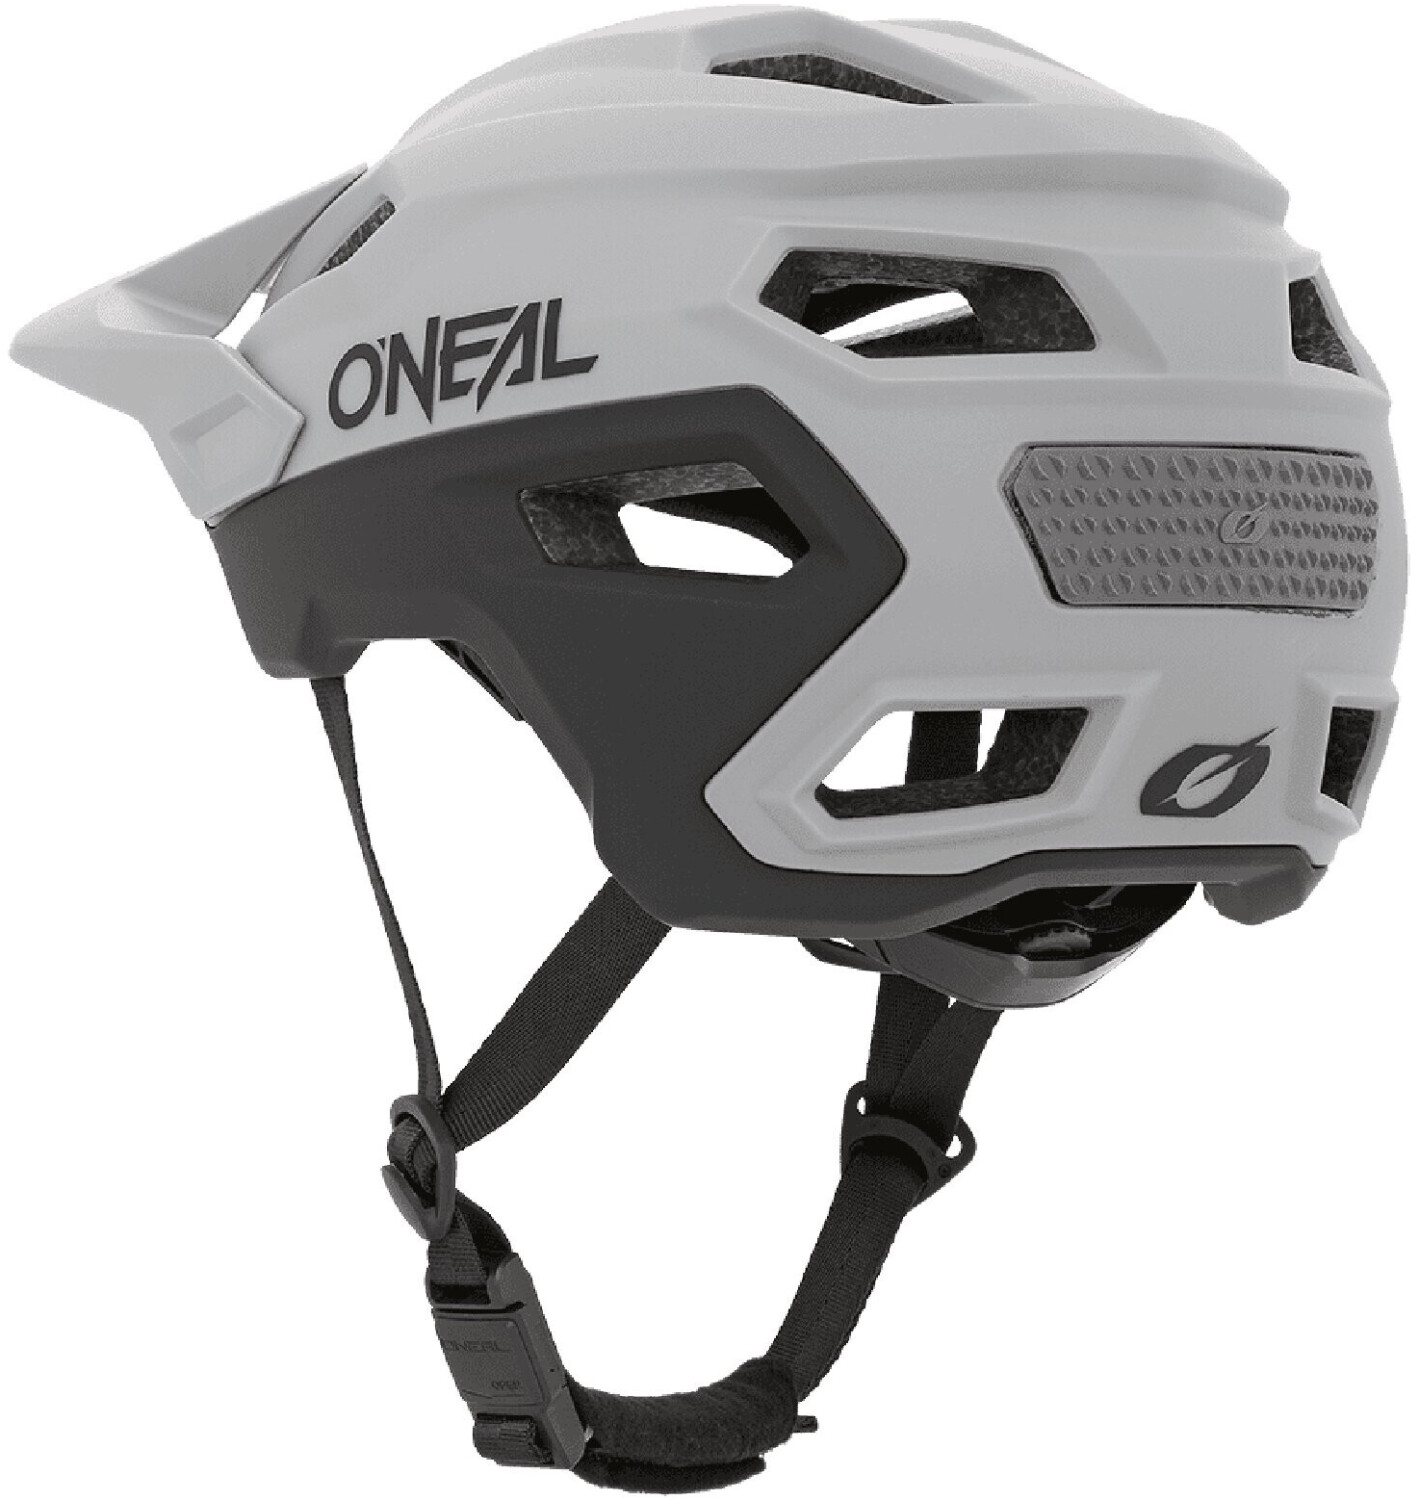 CDA - Casque ONEAL BACKFLIP DH RL2 SOLID Noir Taille M